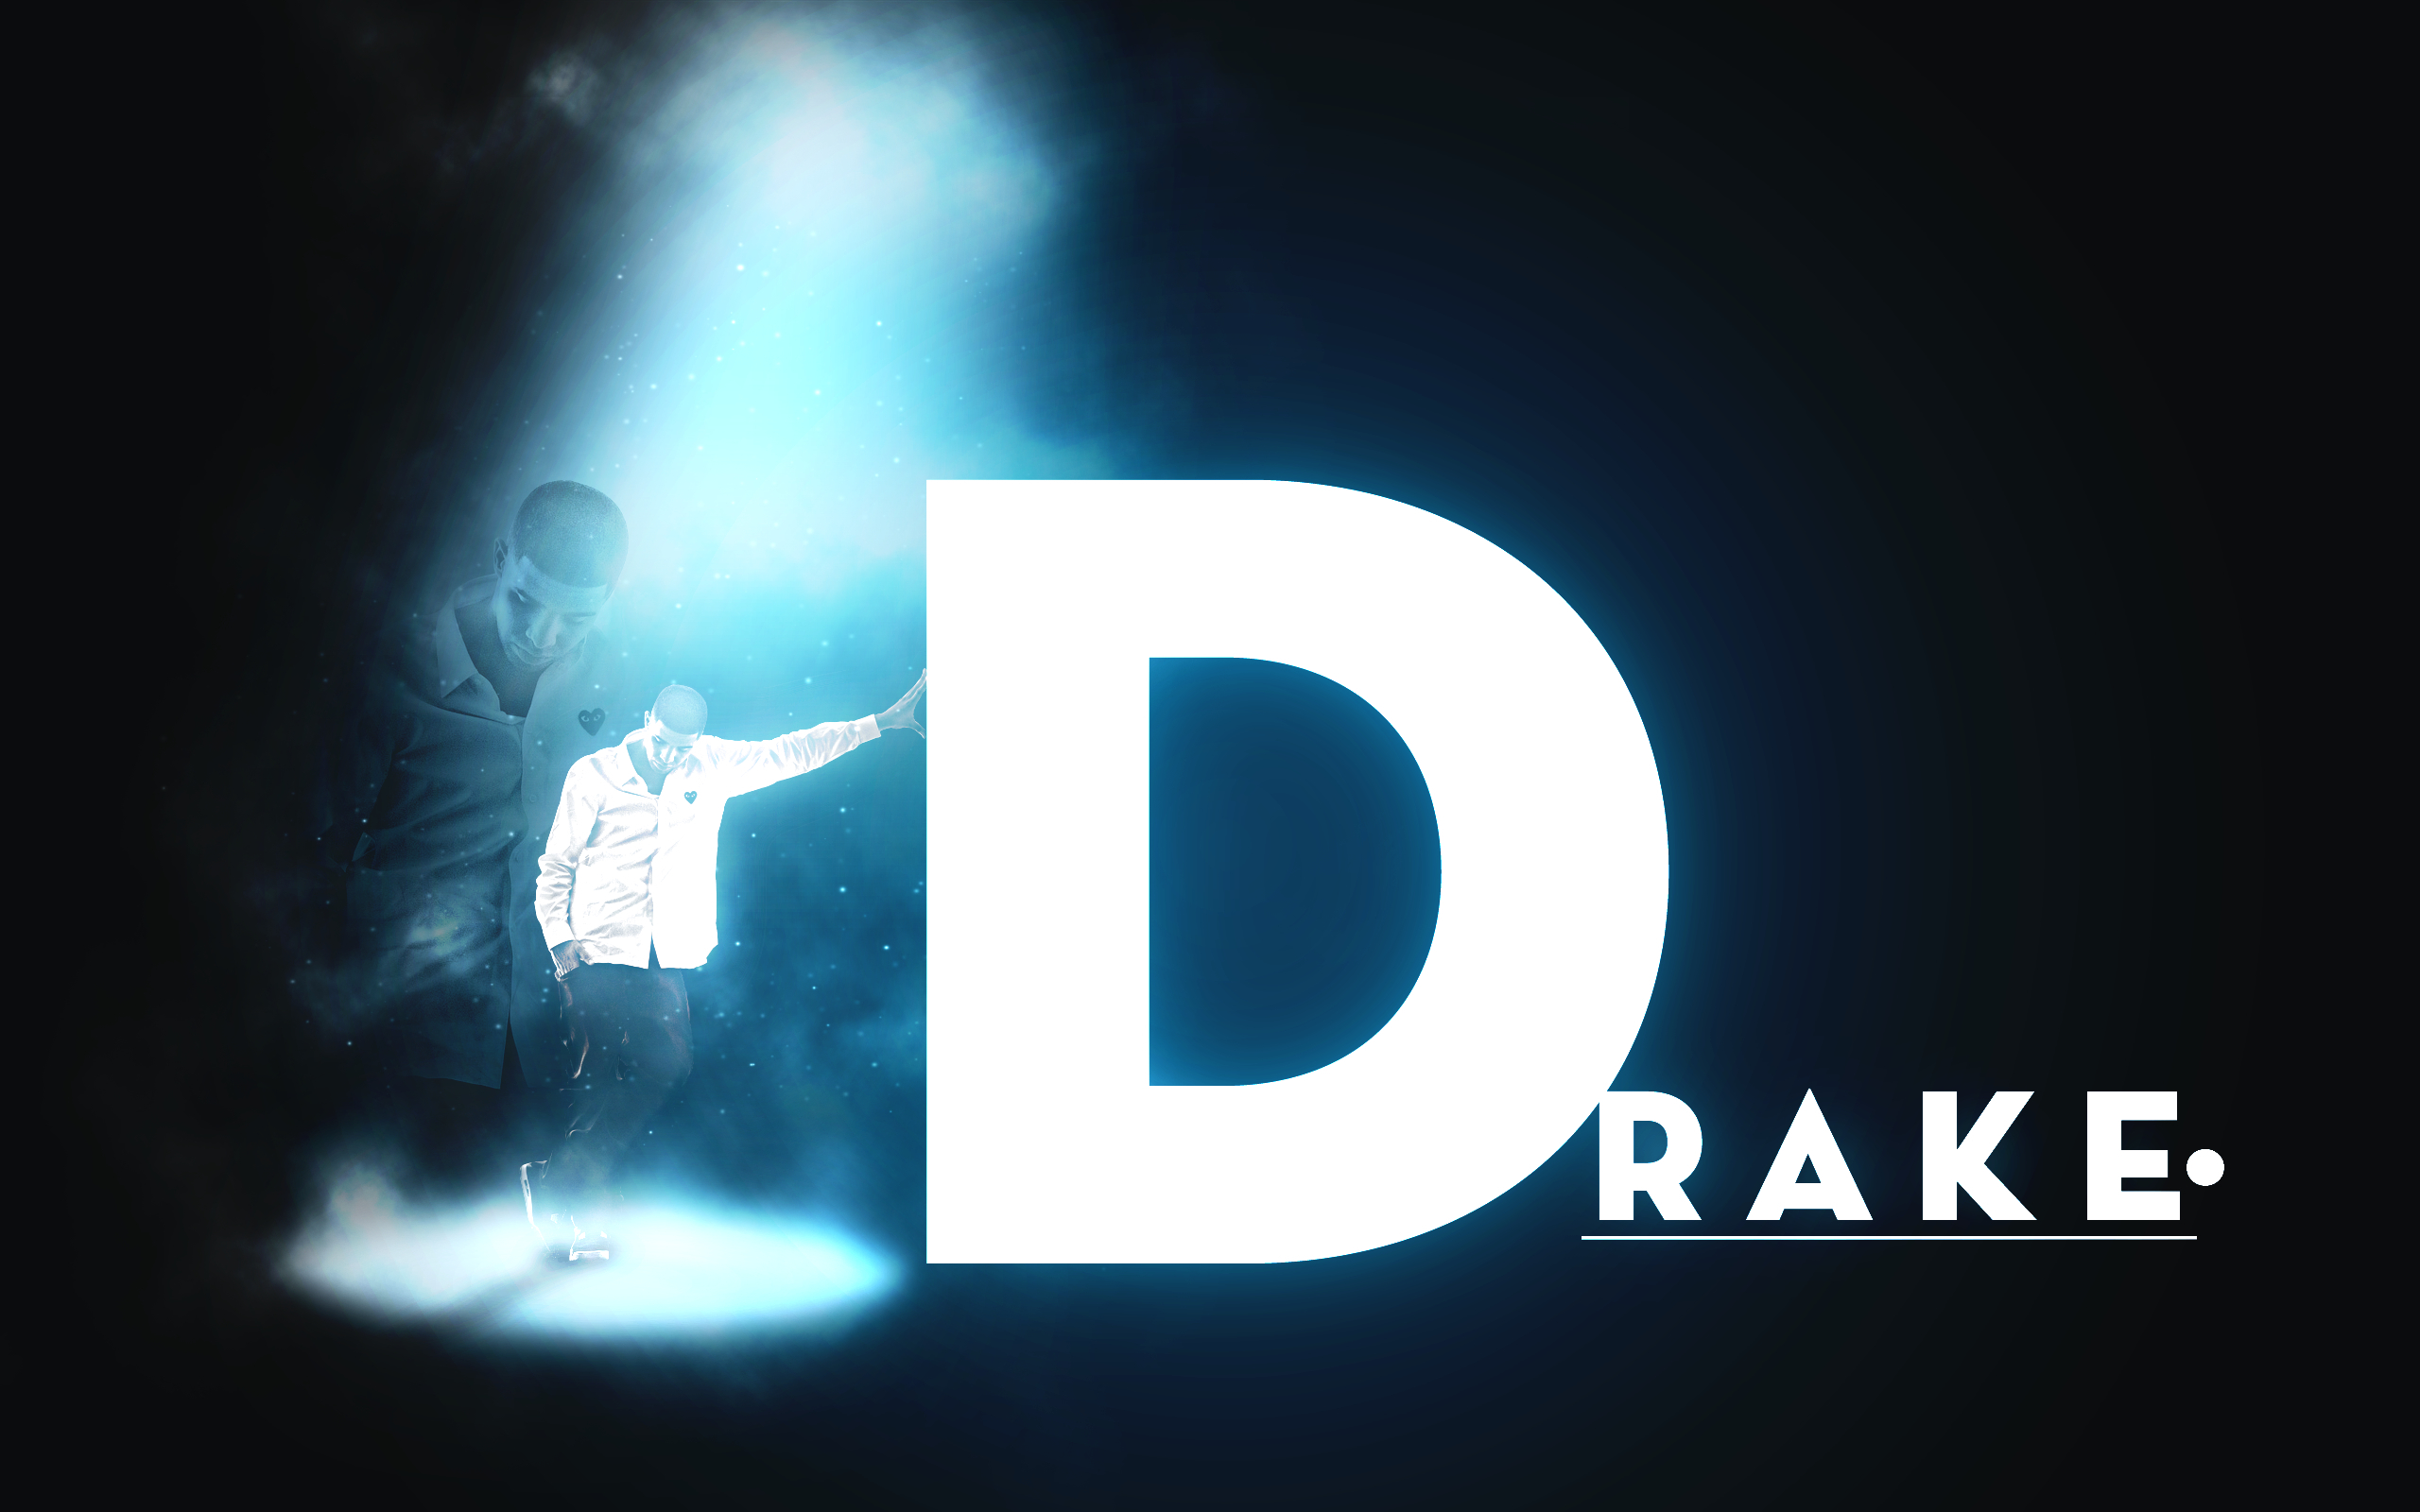 drake by HD Wallpaper